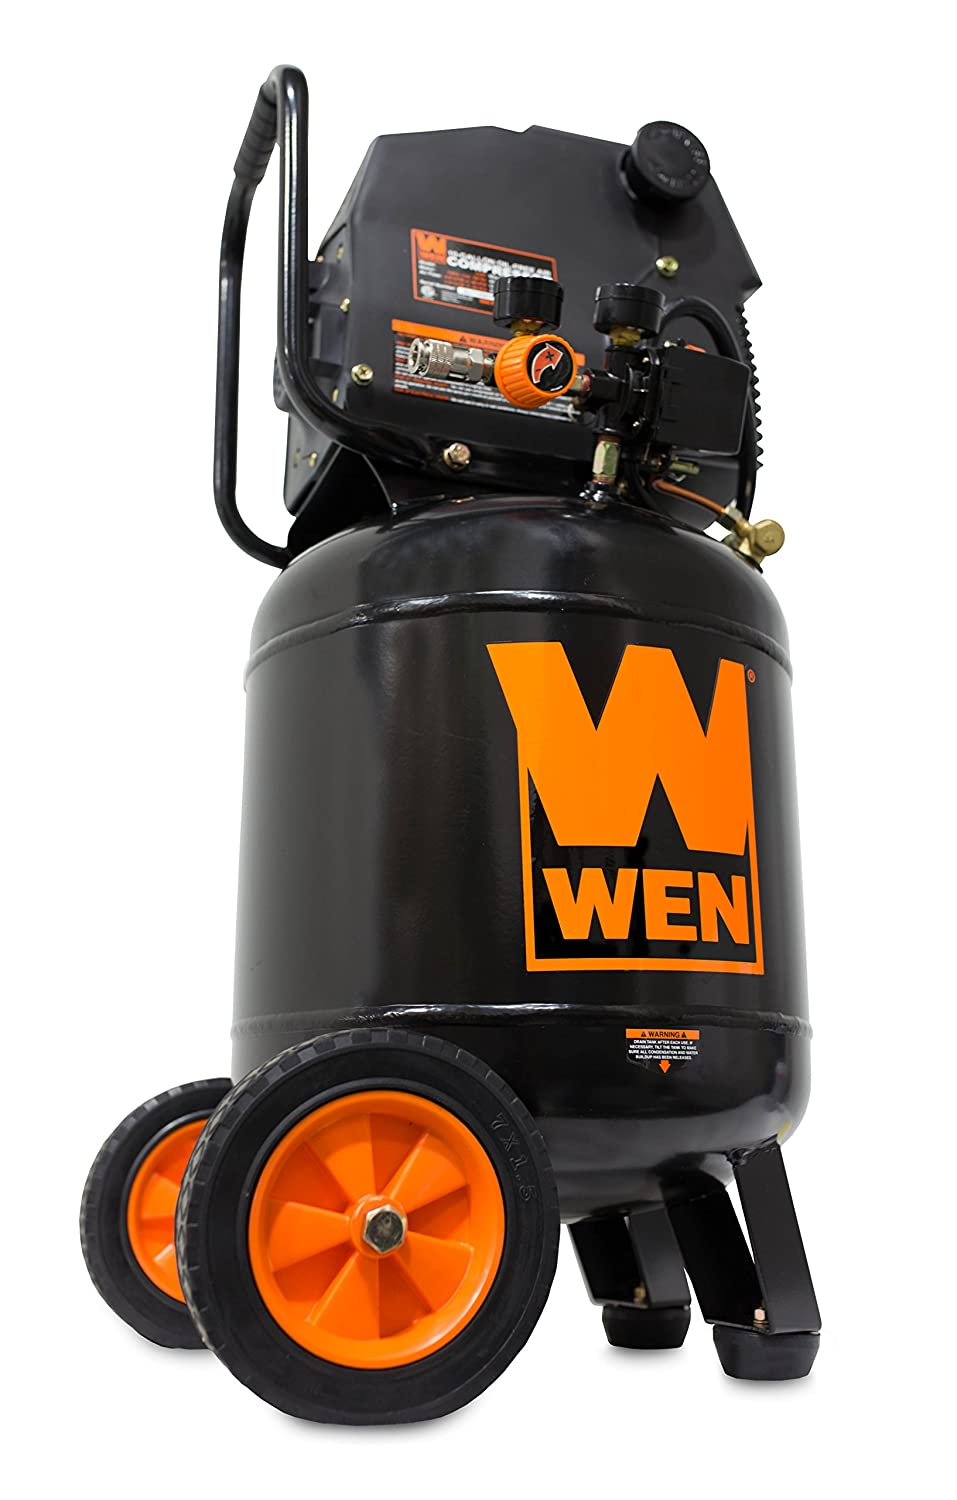 WEN 2289 10-Gallon Oil-Free Vertical Air Compressor, 150 PSI